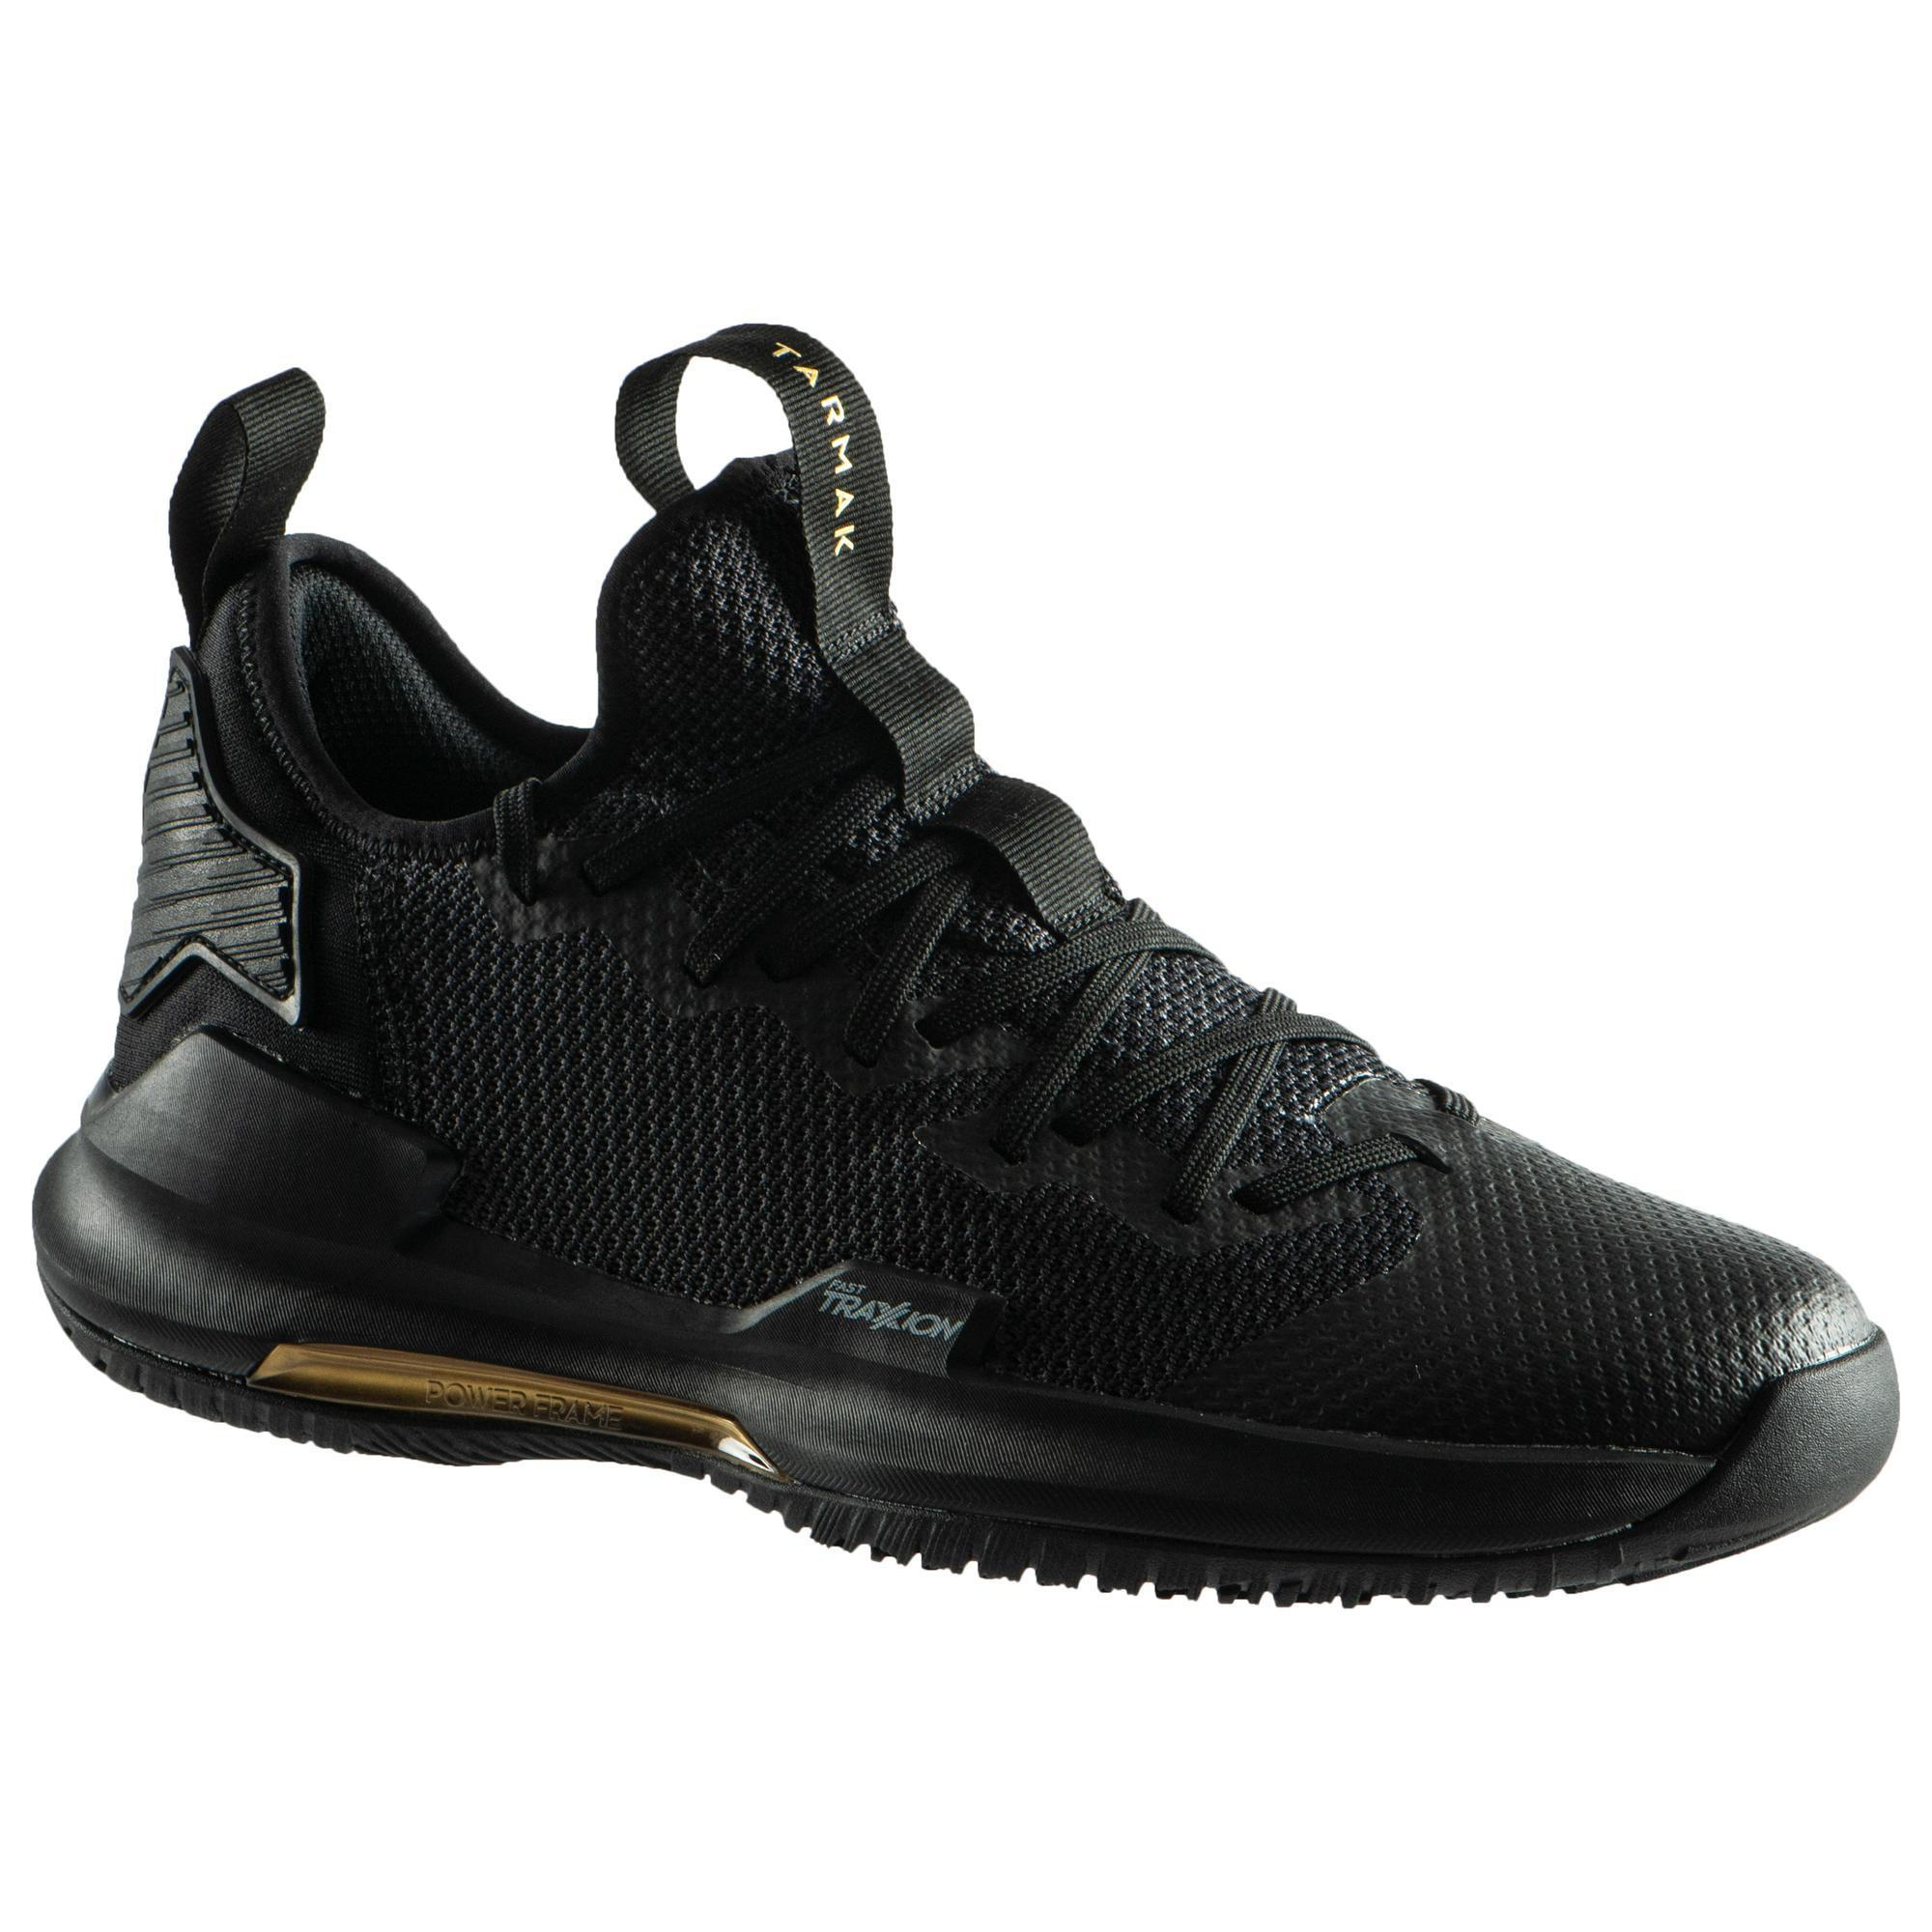 biggest discount presenting delicate colors Chaussures de basketball homme, chaussures de basket homme ...